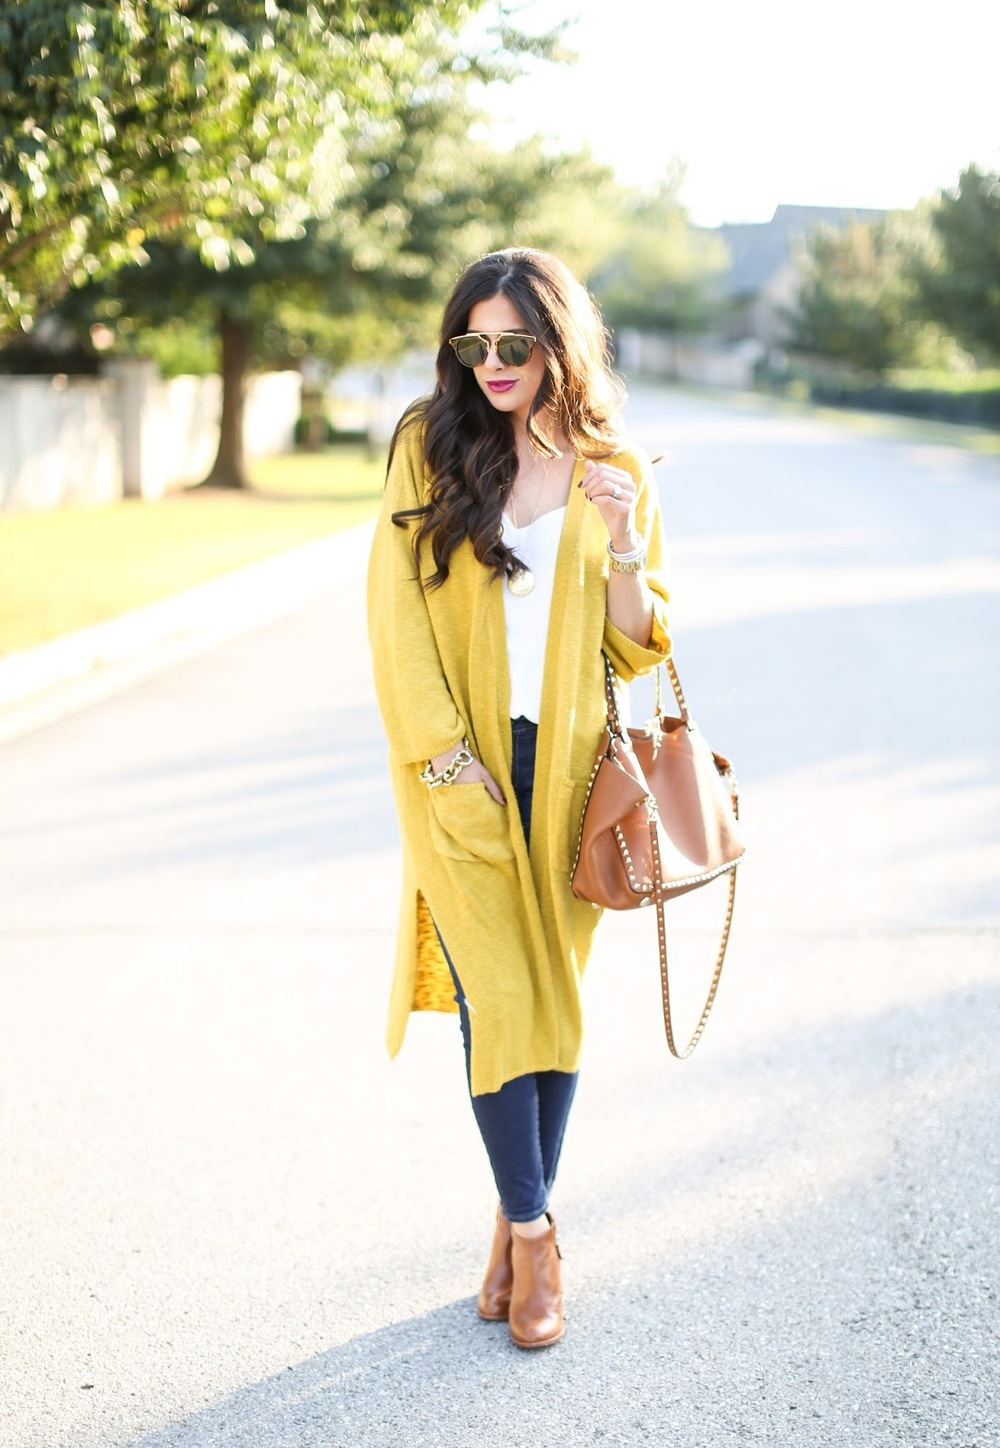 chicwish review, valentino rockstud tote tan, emily gemma, michael kors watch black face, fall outfit idea 2015 pinterest, pinterest outfits fall casual.jpg